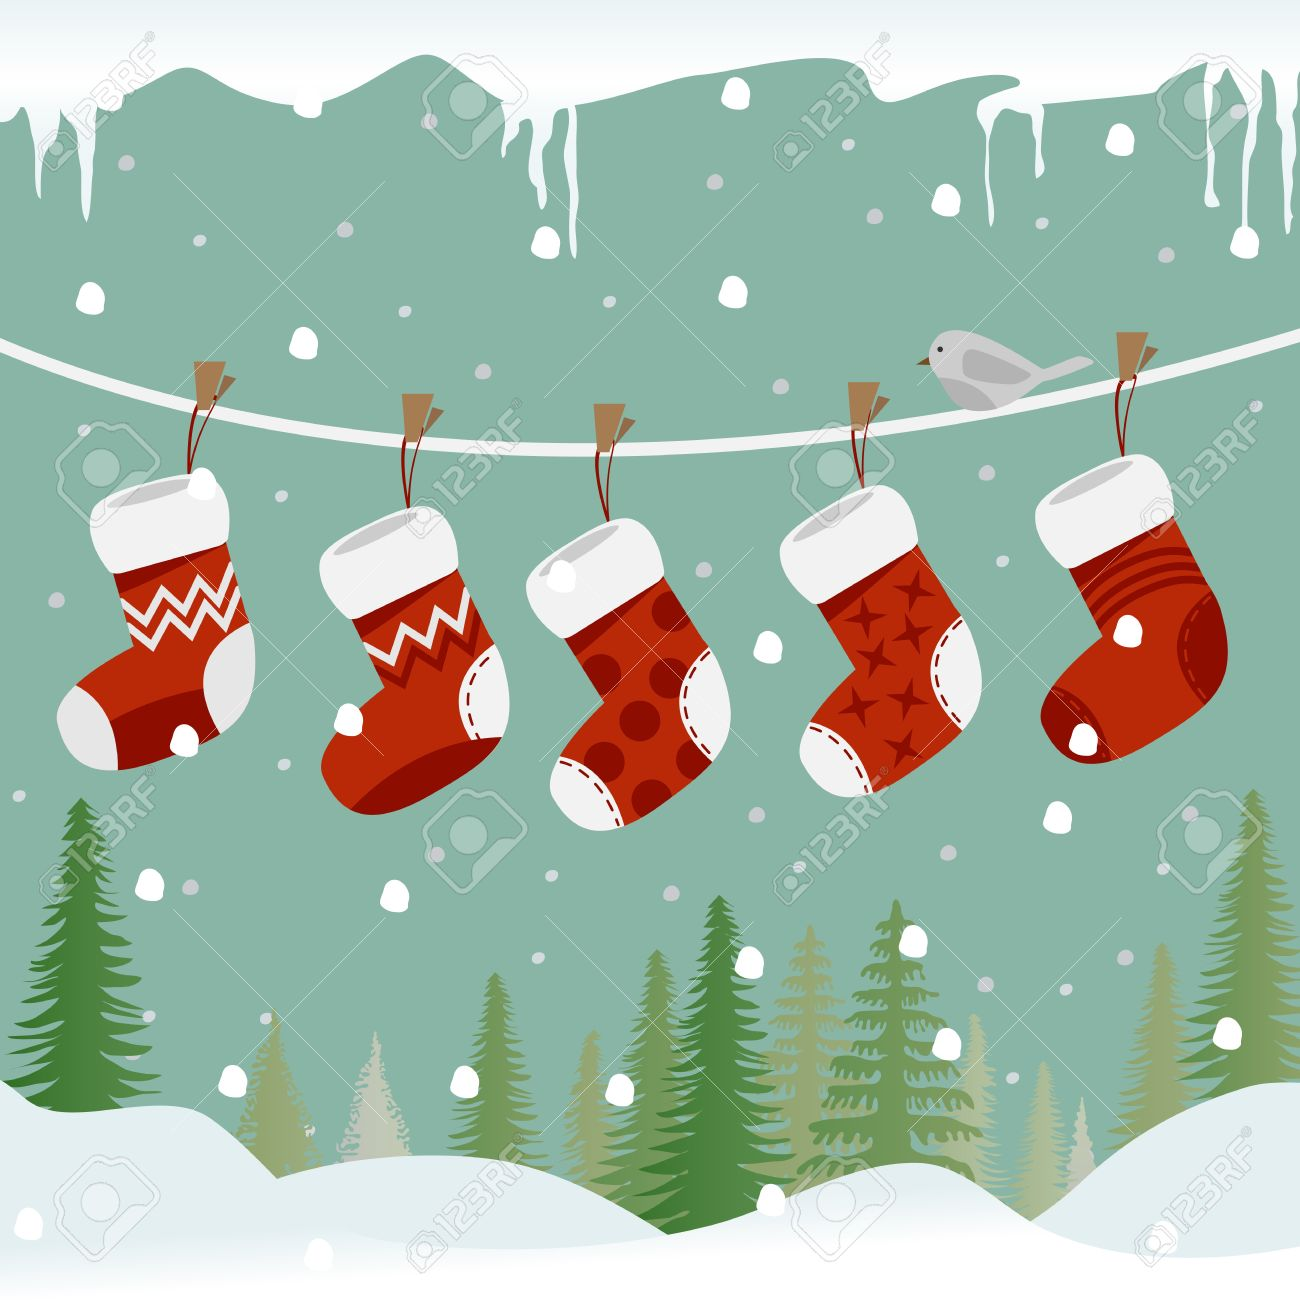 Five Red Christmas Socks On The Rope With Little Bird Royalty Free ...